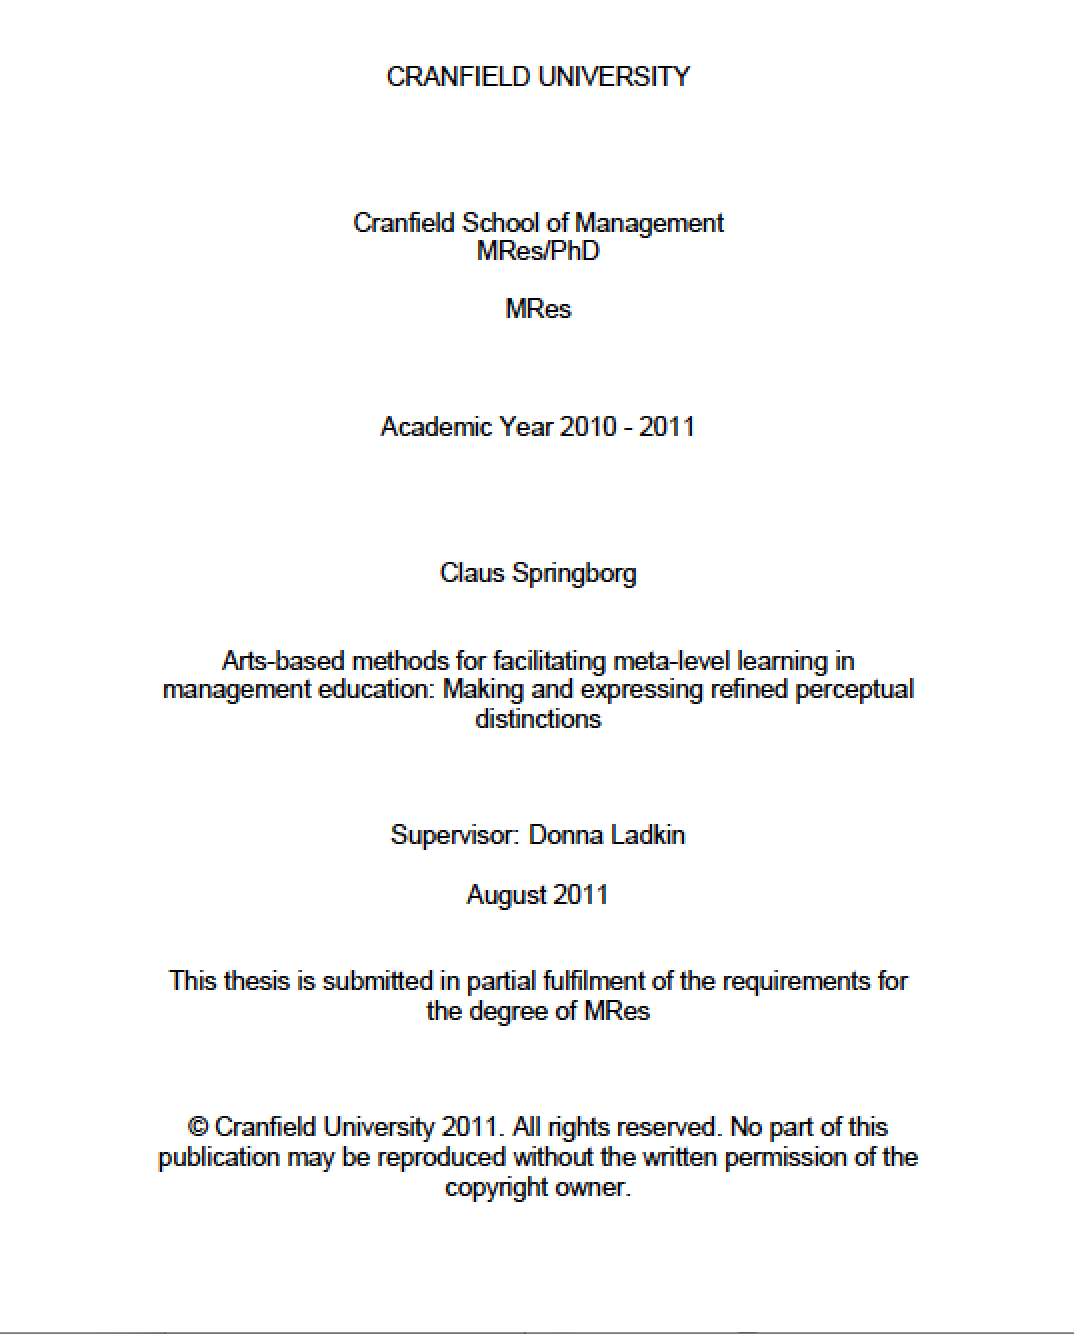 Arts-based methods for facilitating meta-level learning in management education